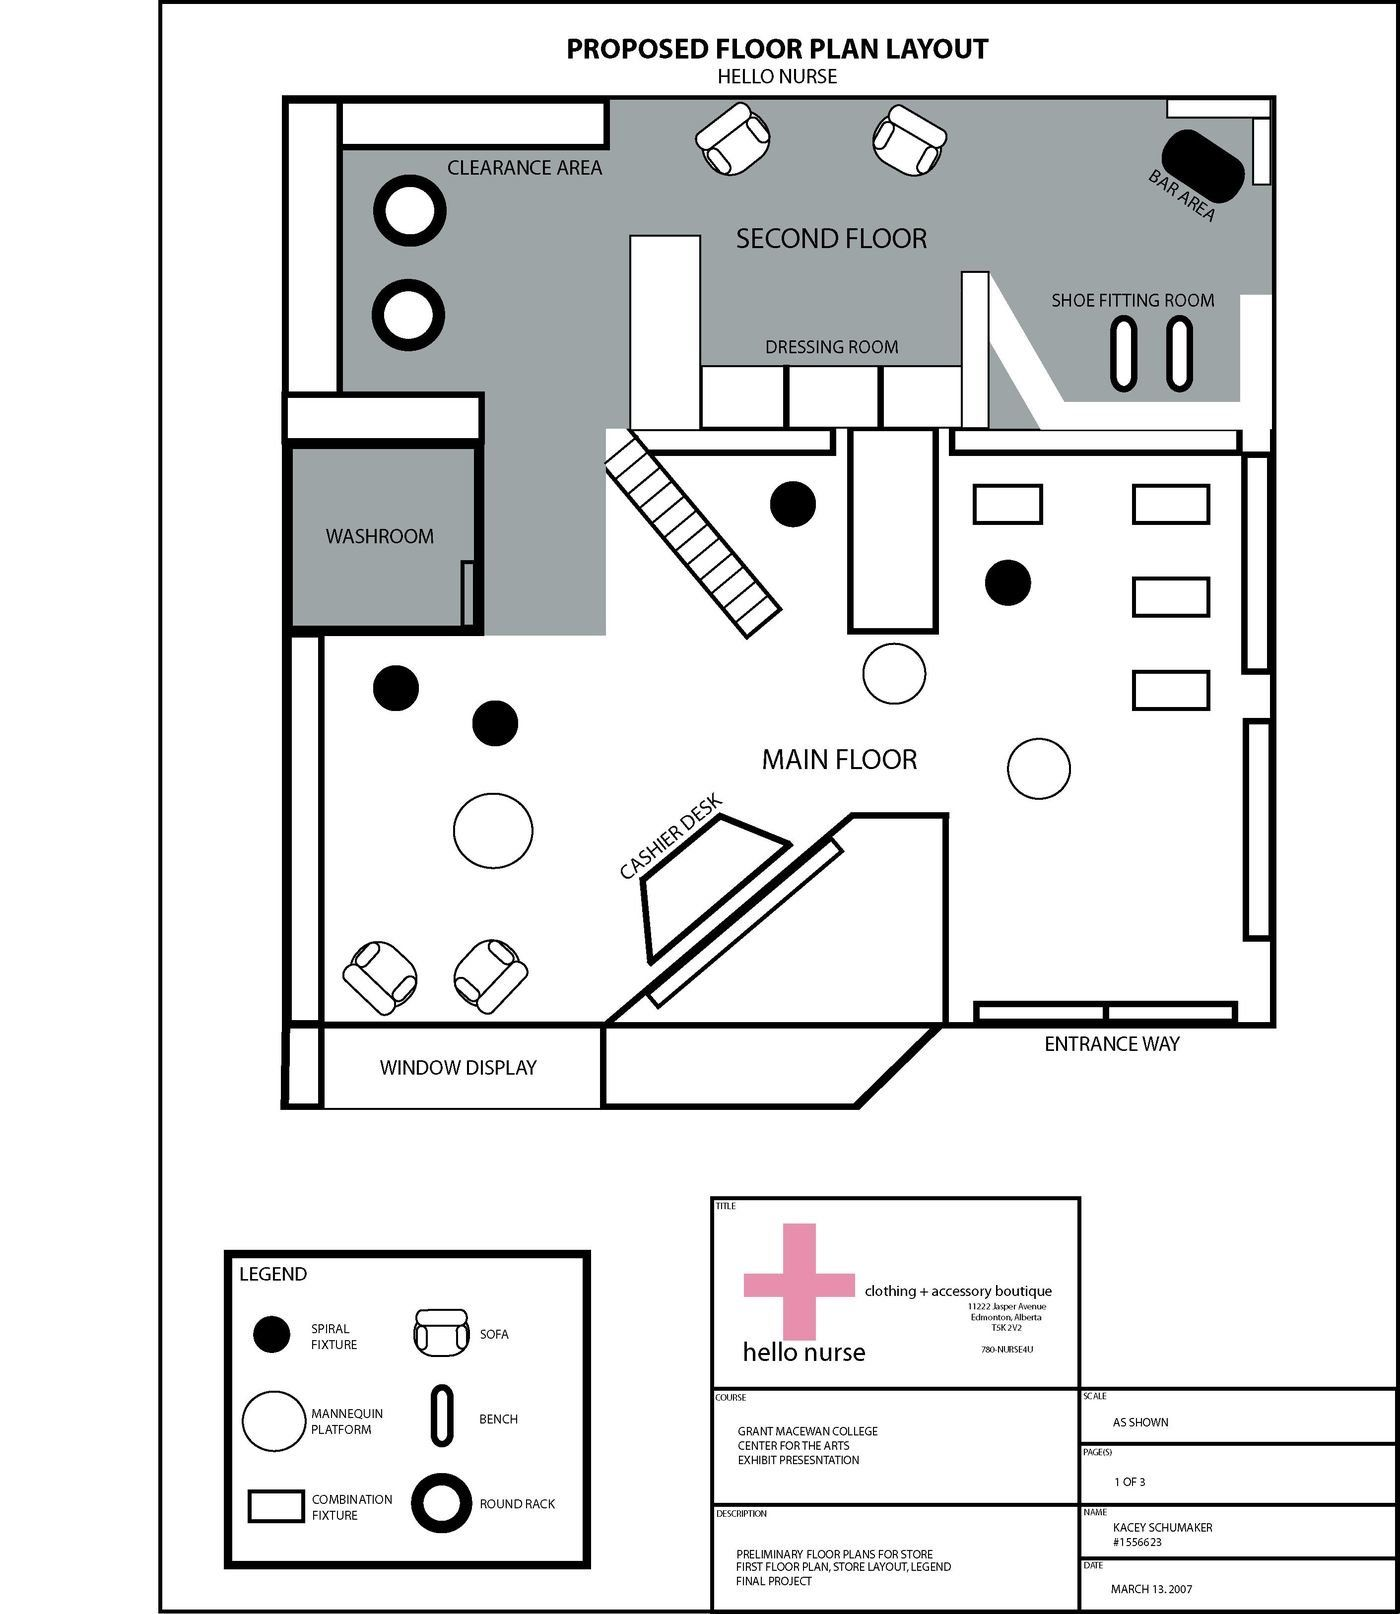 Model Building By Kacey Schumaker At Coroflot Com Floor Plans Store Layout How To Plan